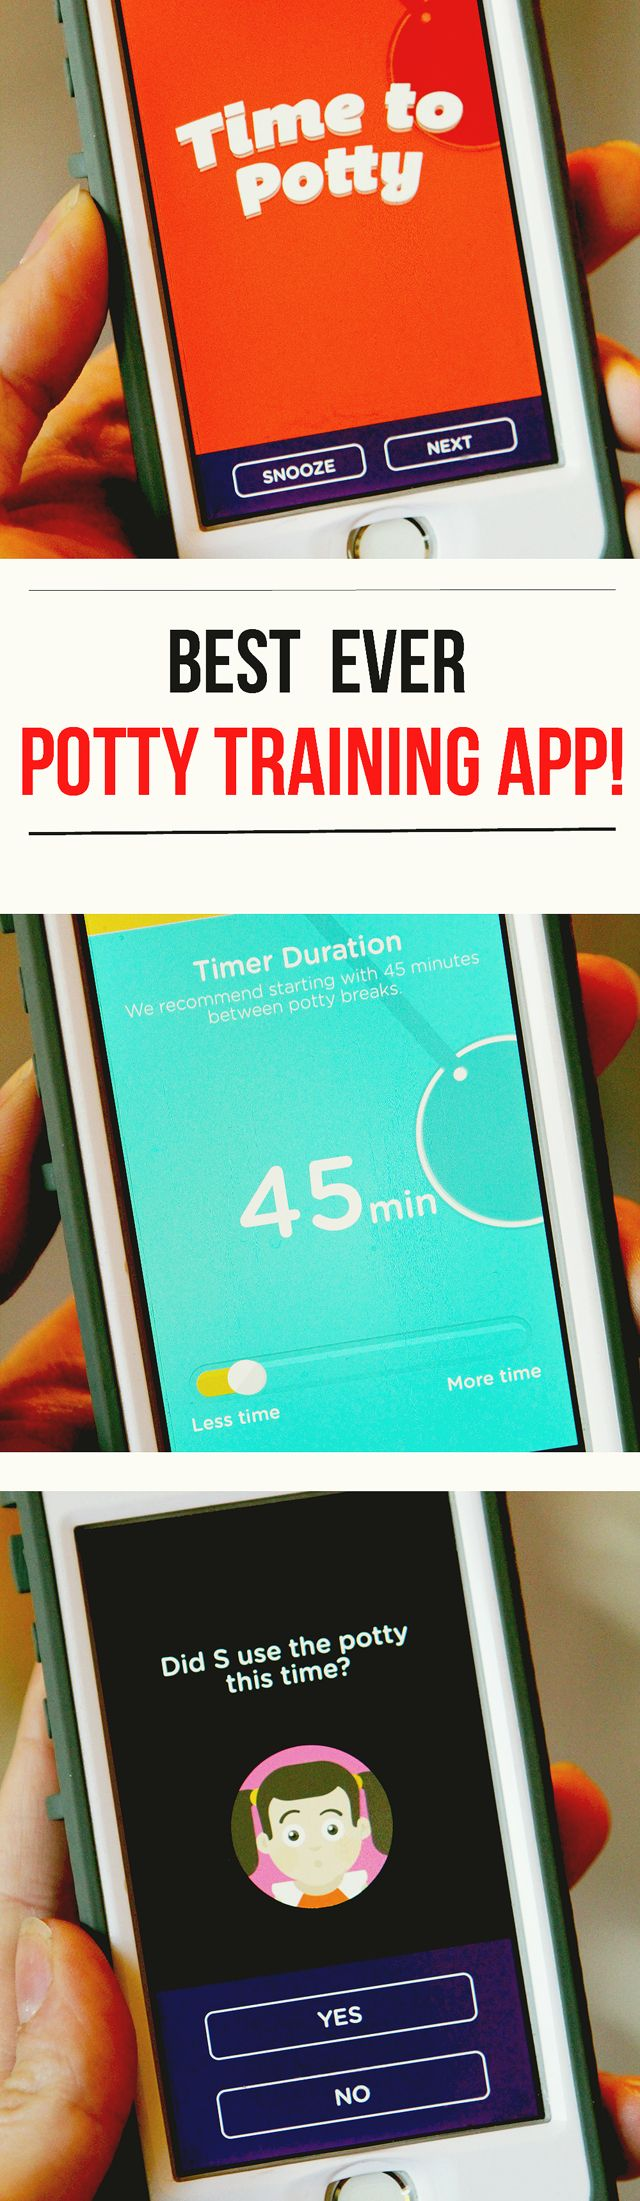 Best Ever Potty Training App: